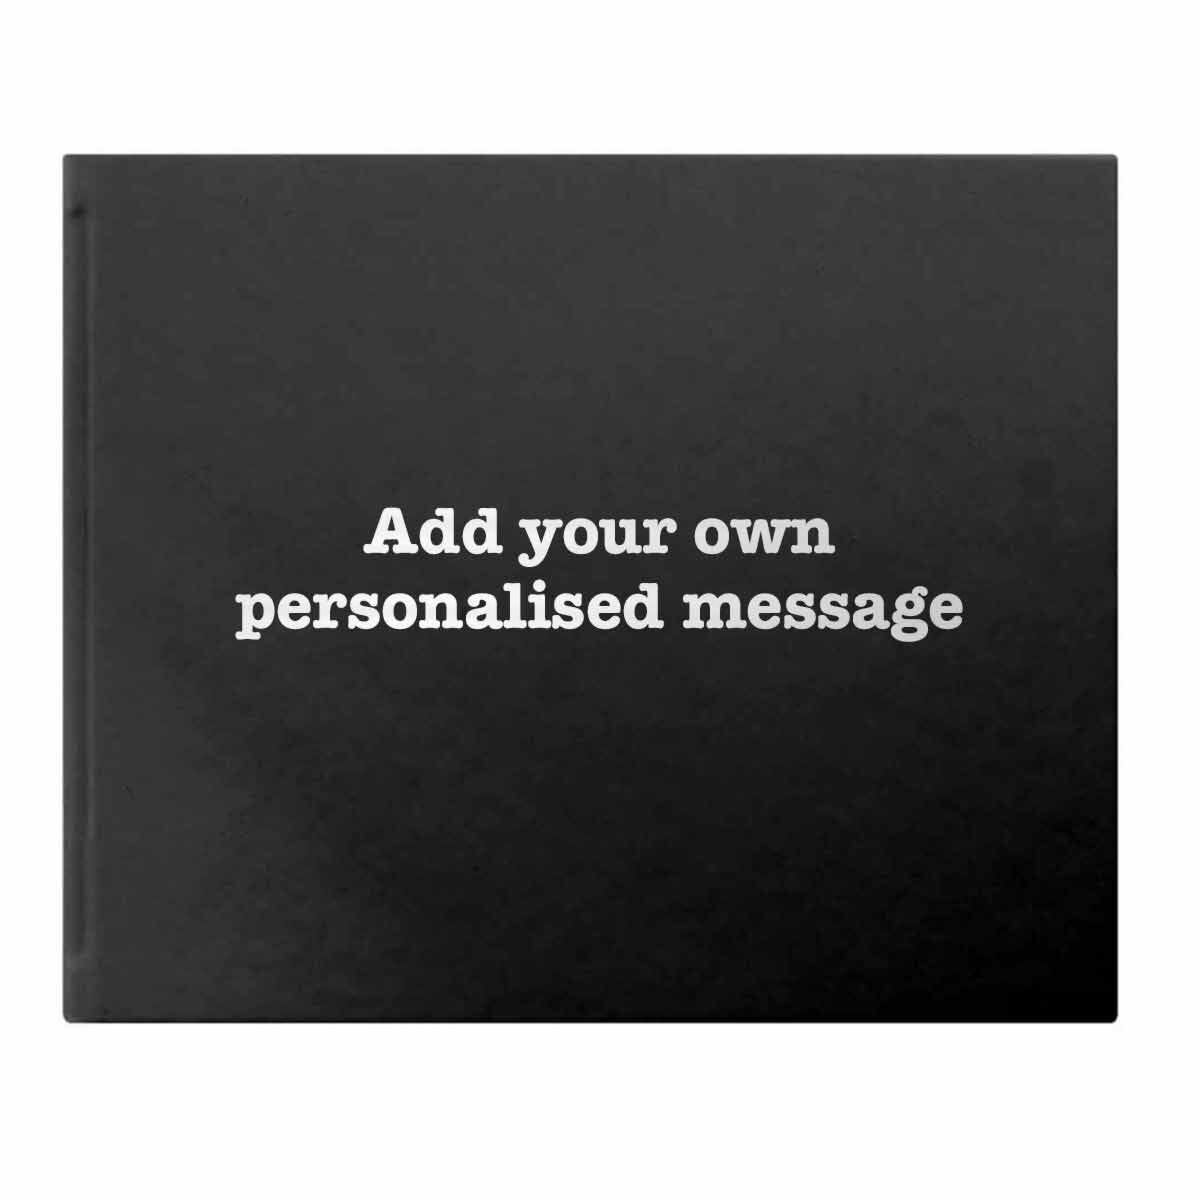 Letts Dazzle Personalised Occasions Typewriter Font Black Silver